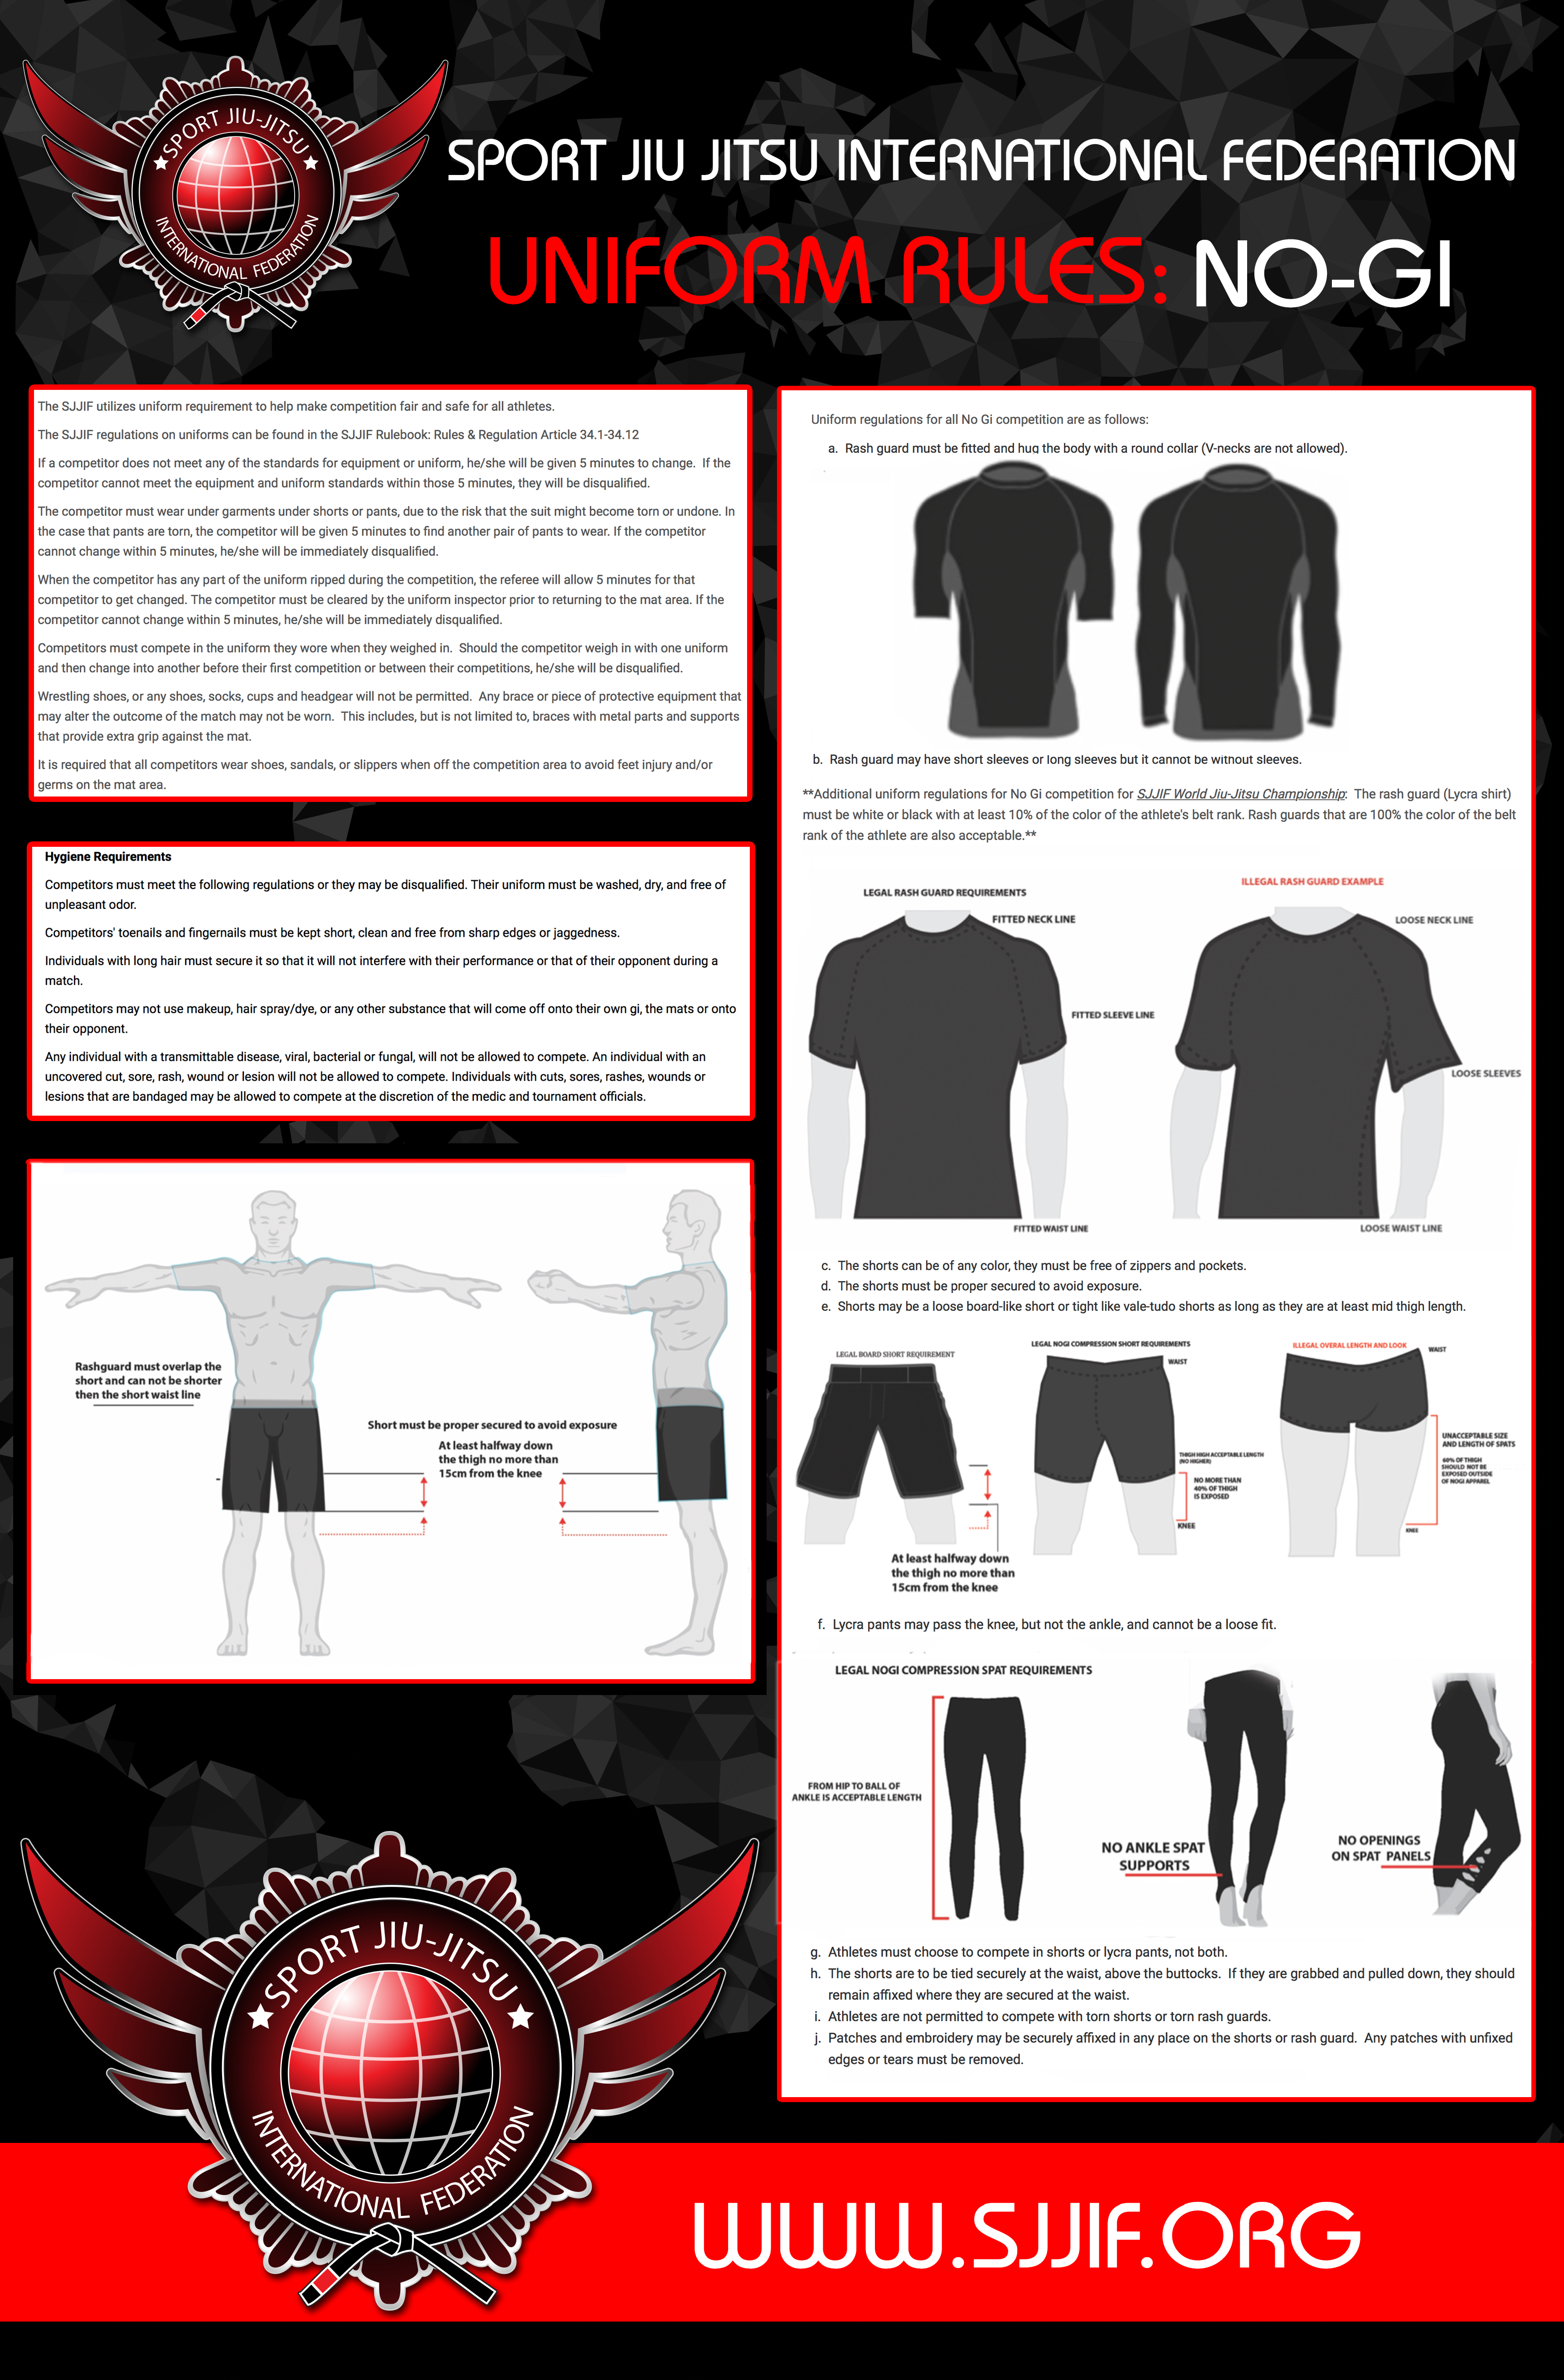 SJJIF NoGI Uniform Rules Poster